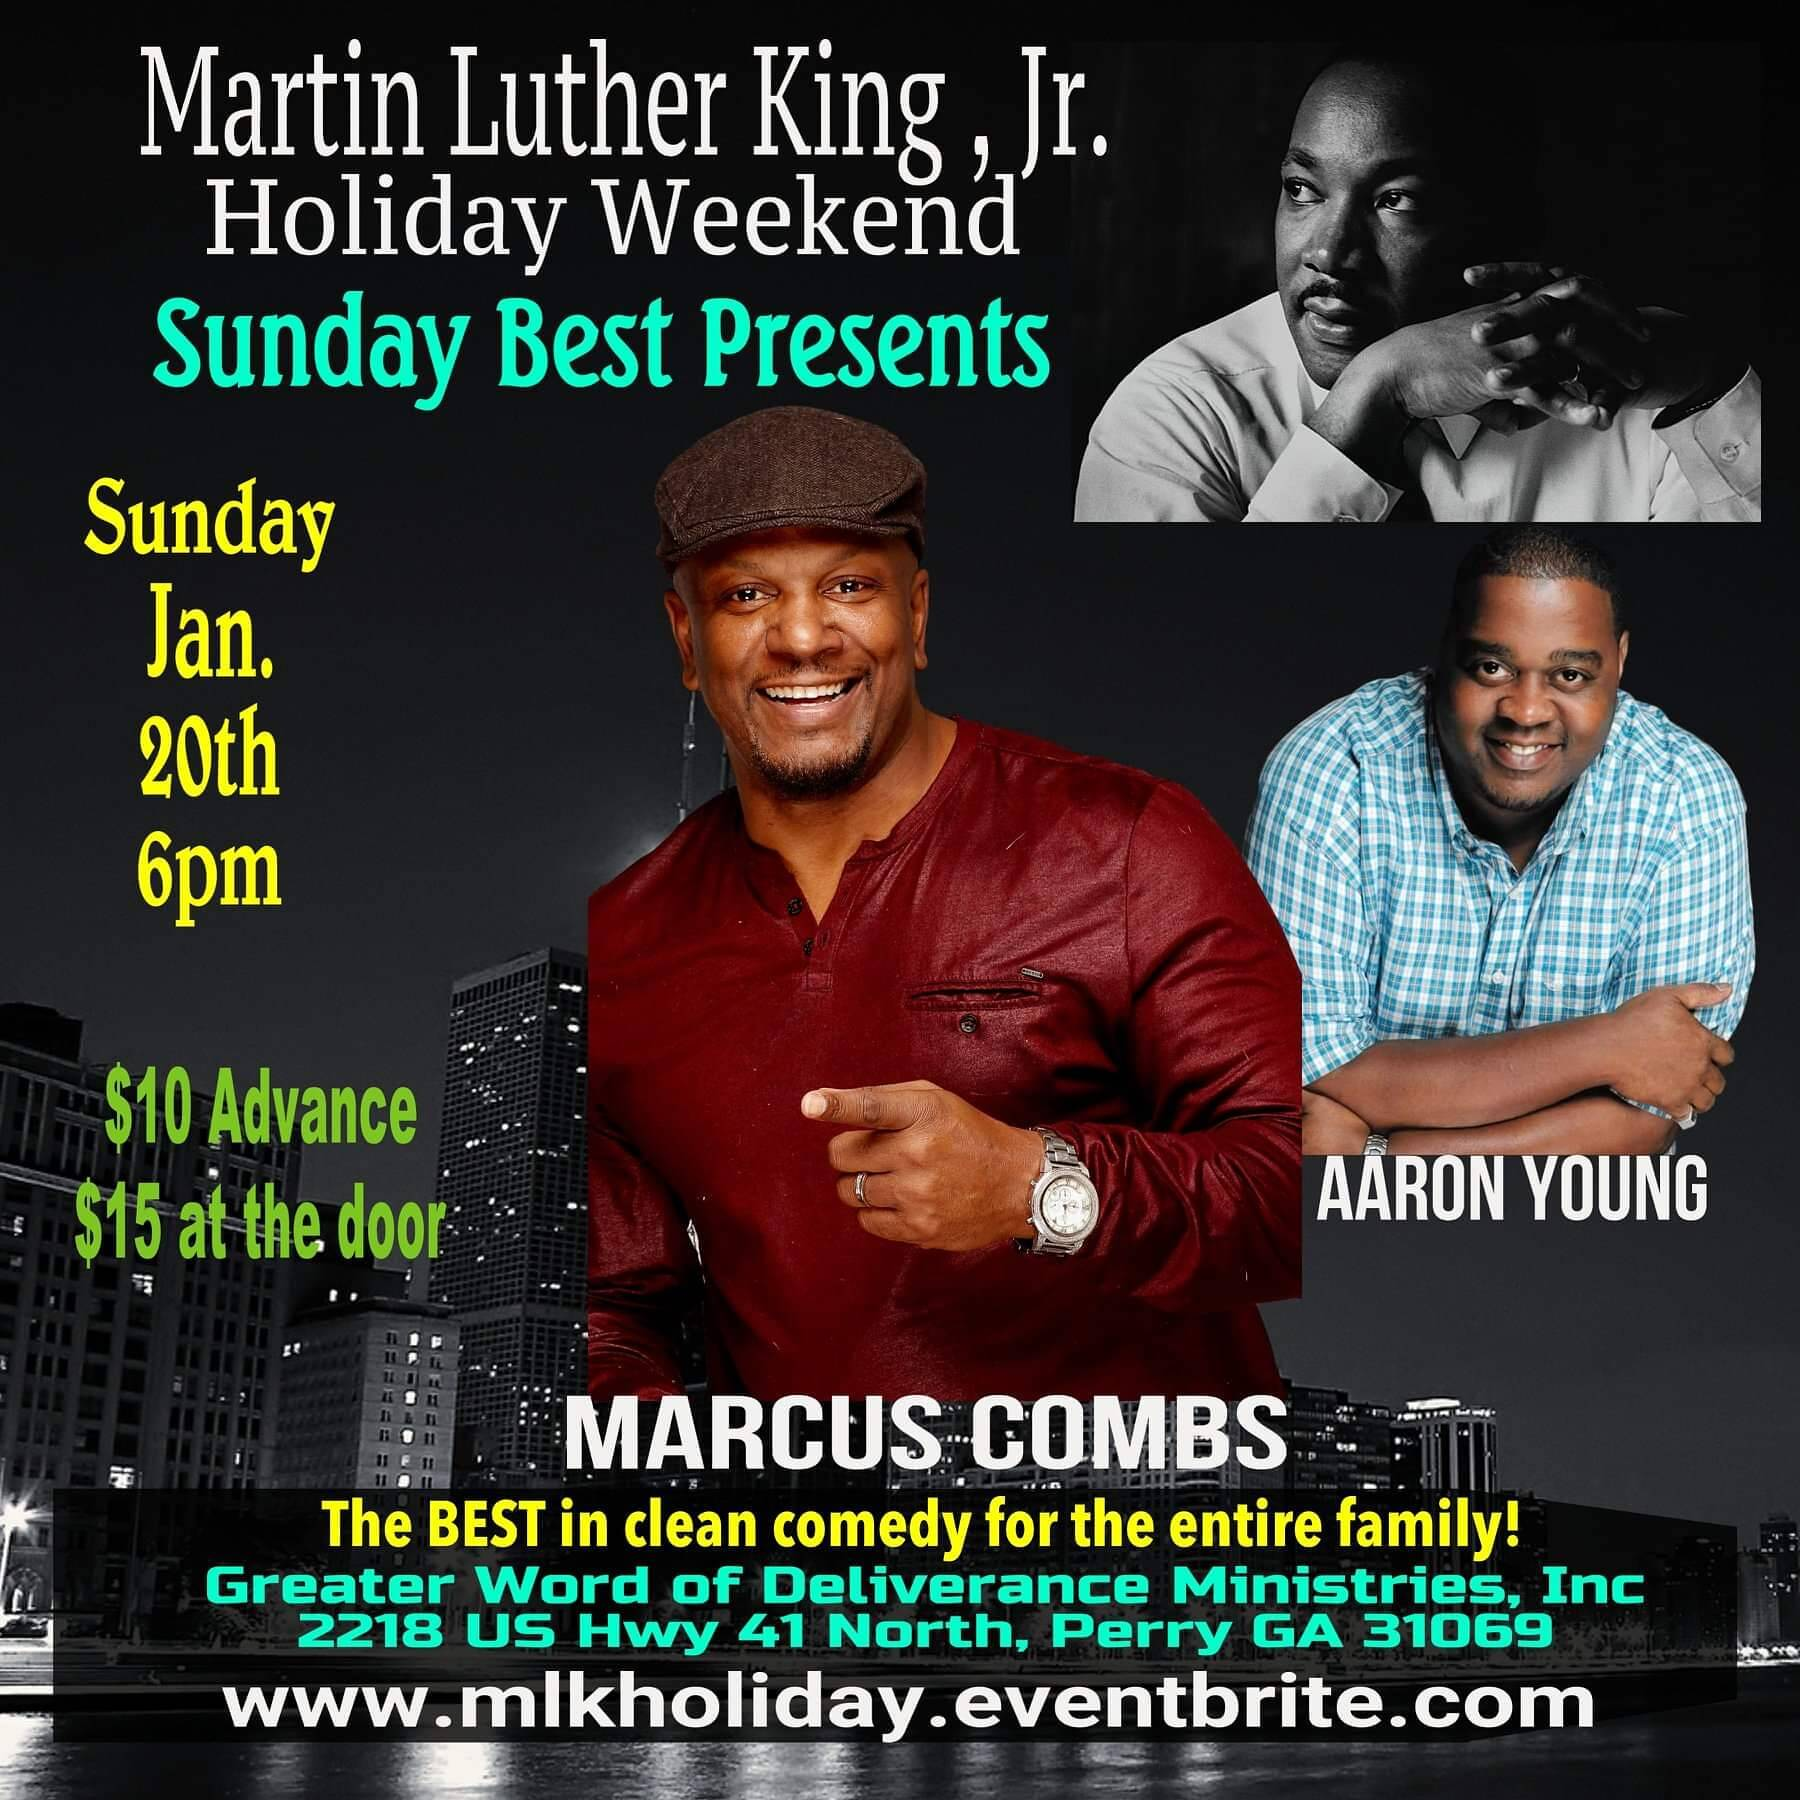 Sunday Best Presents: Marcus Combs & Aaron Young